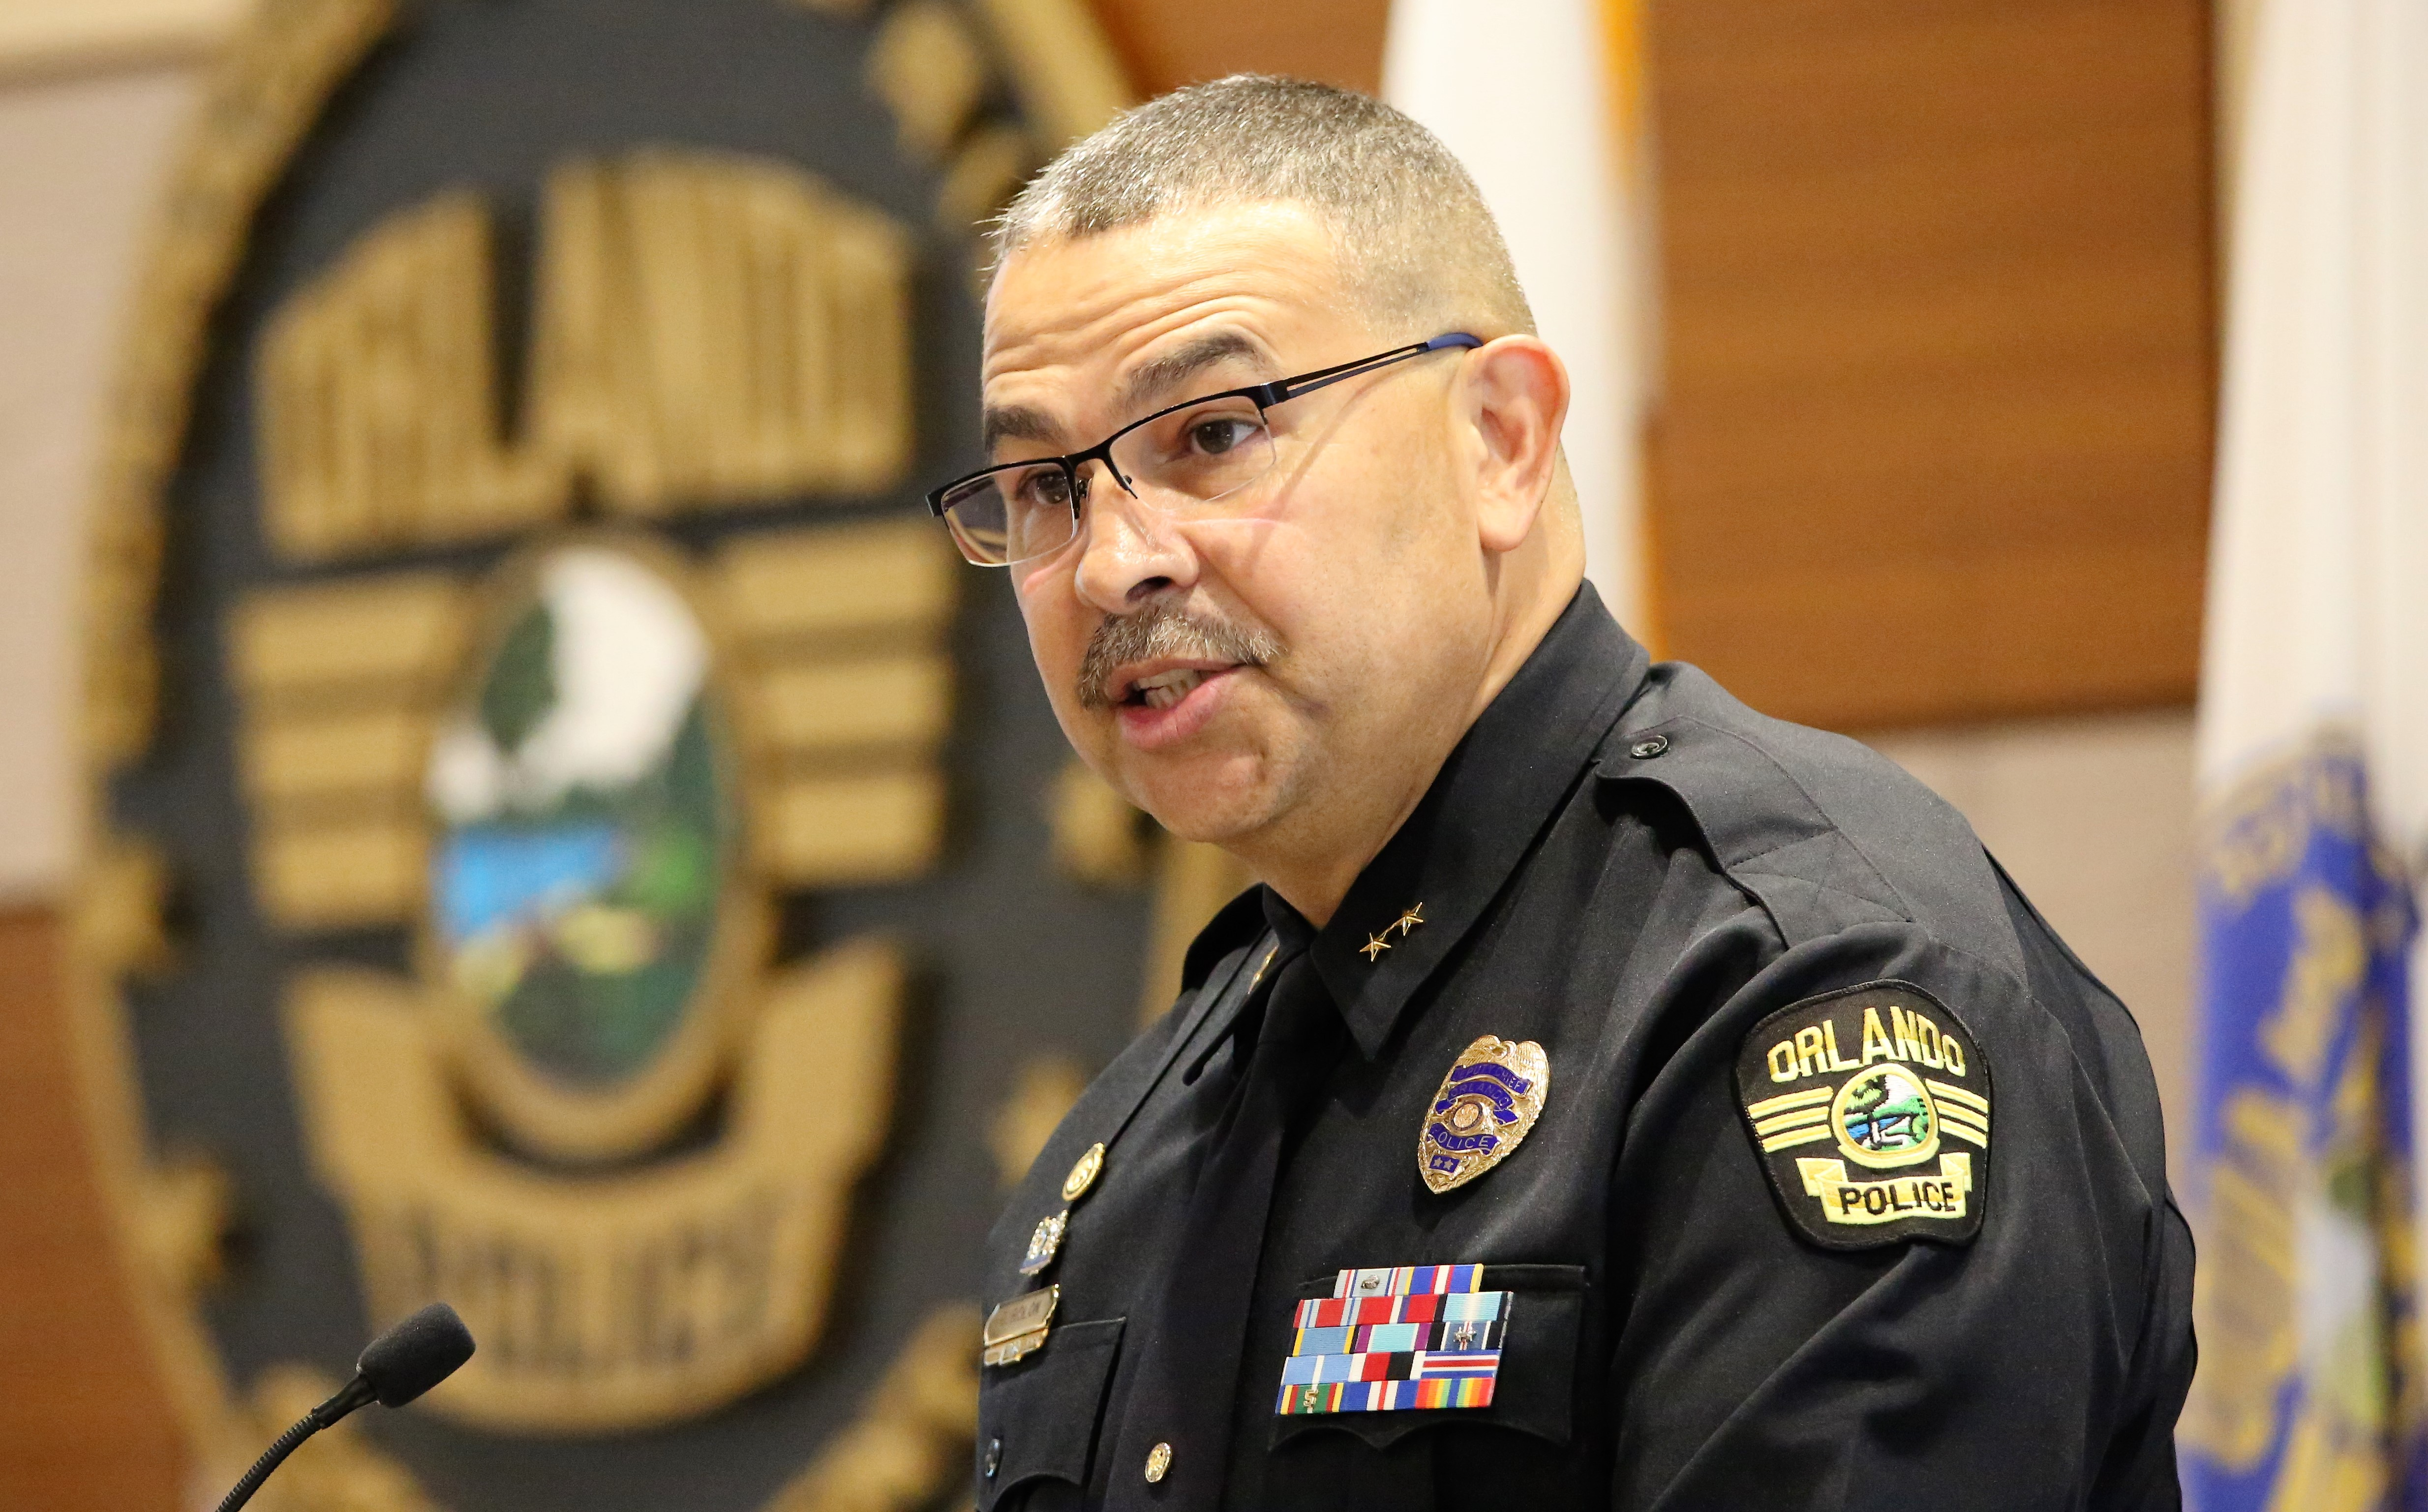 Orlando Mayor Buddy Dyer appoints Deputy Police Chief Orlando Rolon as the 39th Police Chief at the Orlando Police Headquarters Thursday, October 11, 2018. (Photo by Willie David / Florida National News)